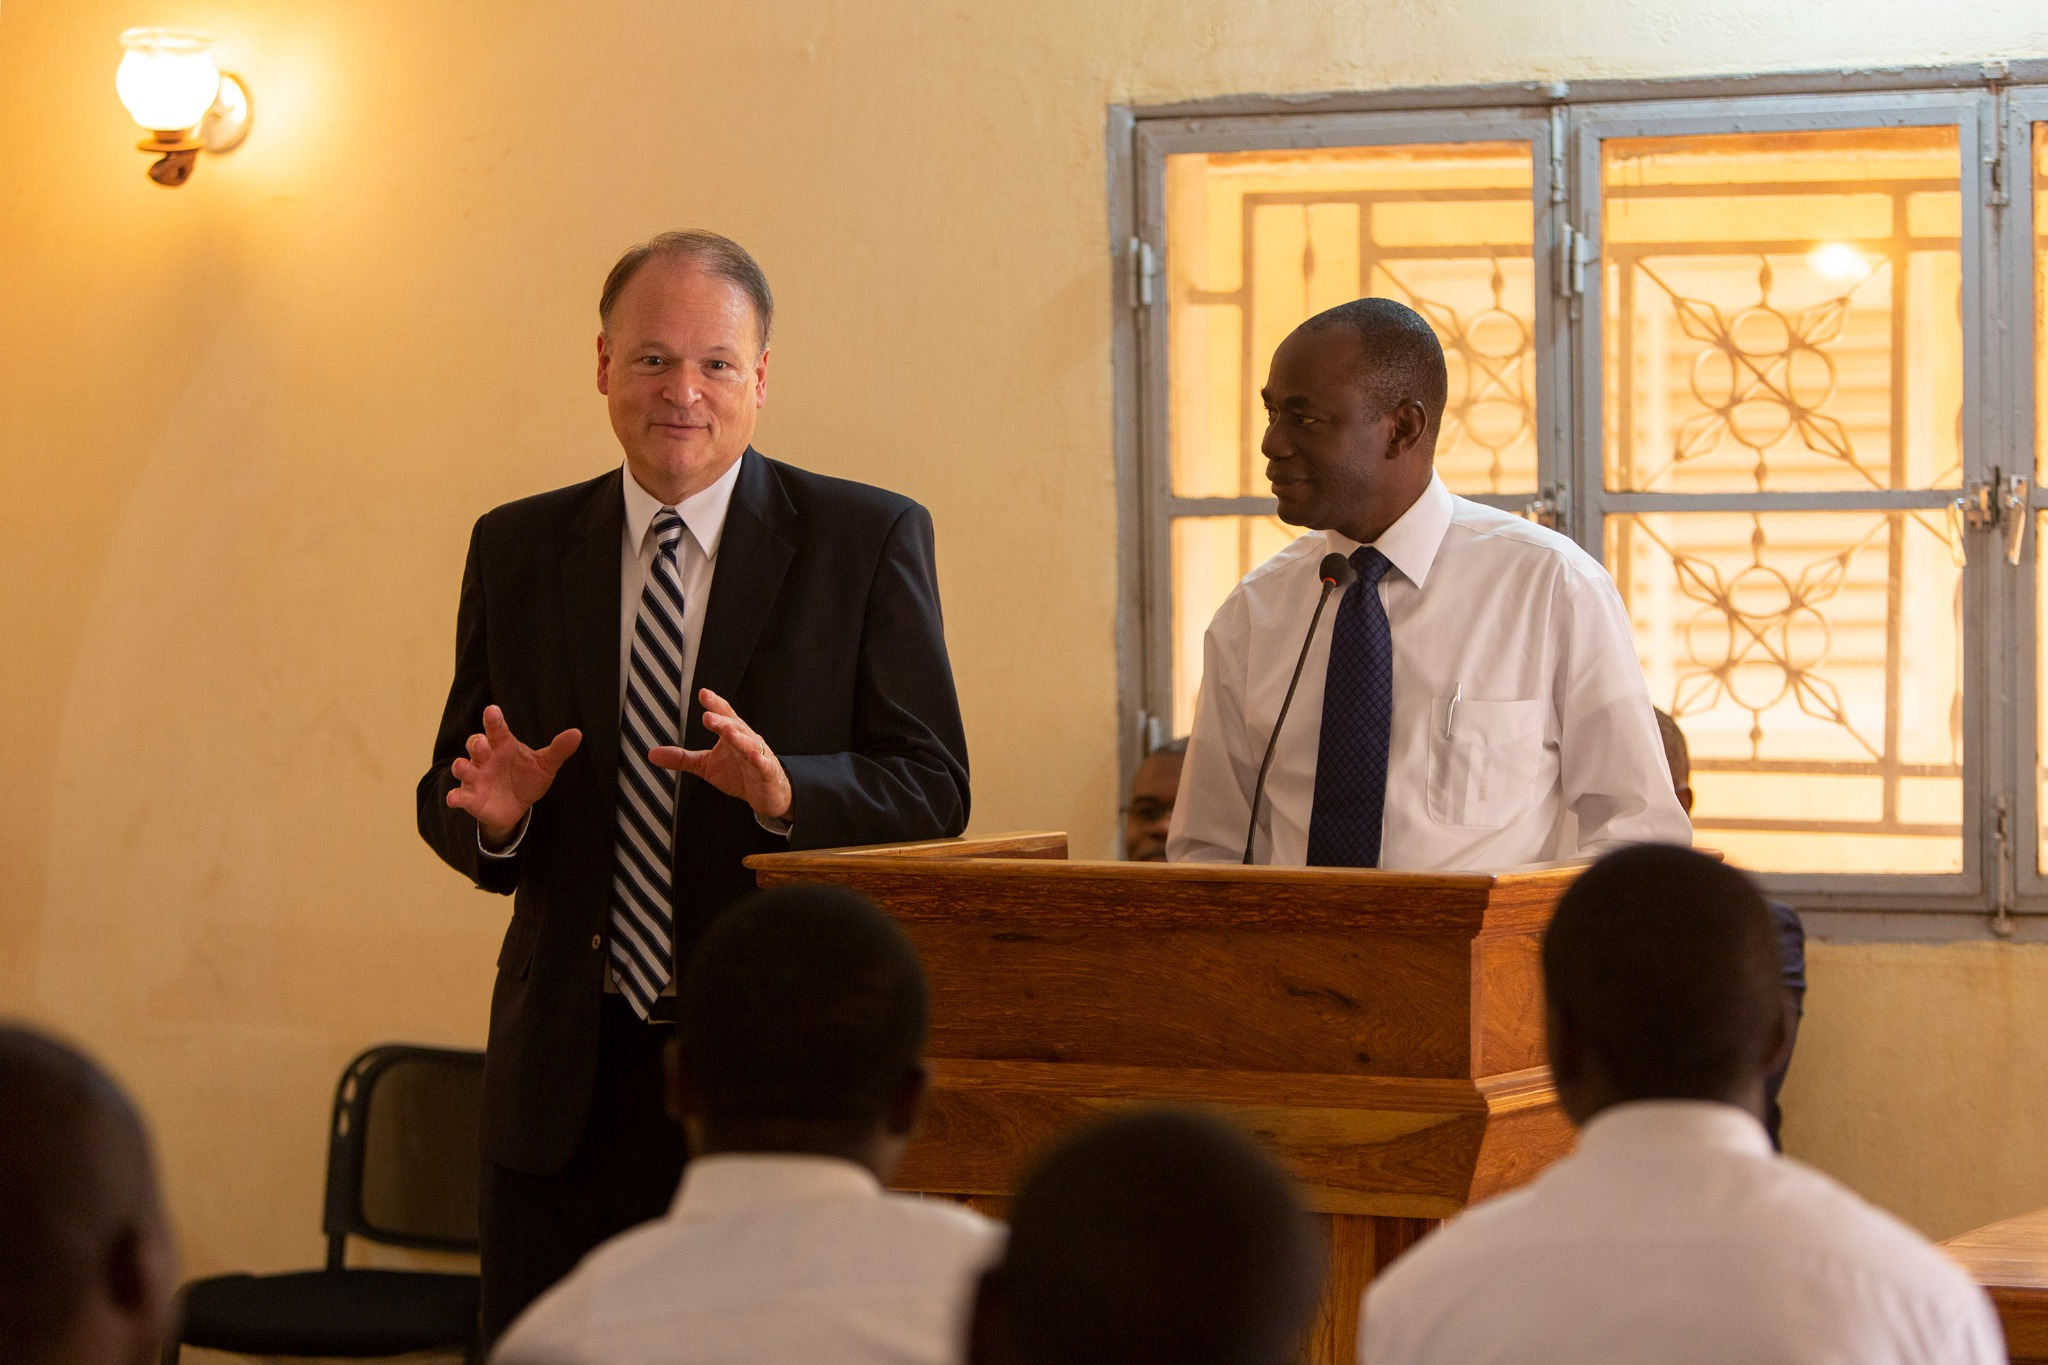 Elder Marcus B. Nash, General Authority Seventy and president of the Africa West Area, discusses the details of the official religious recognition of The Church of Jesus Christ of Latter-day Saints by Mali, Sept. 12, 2019.